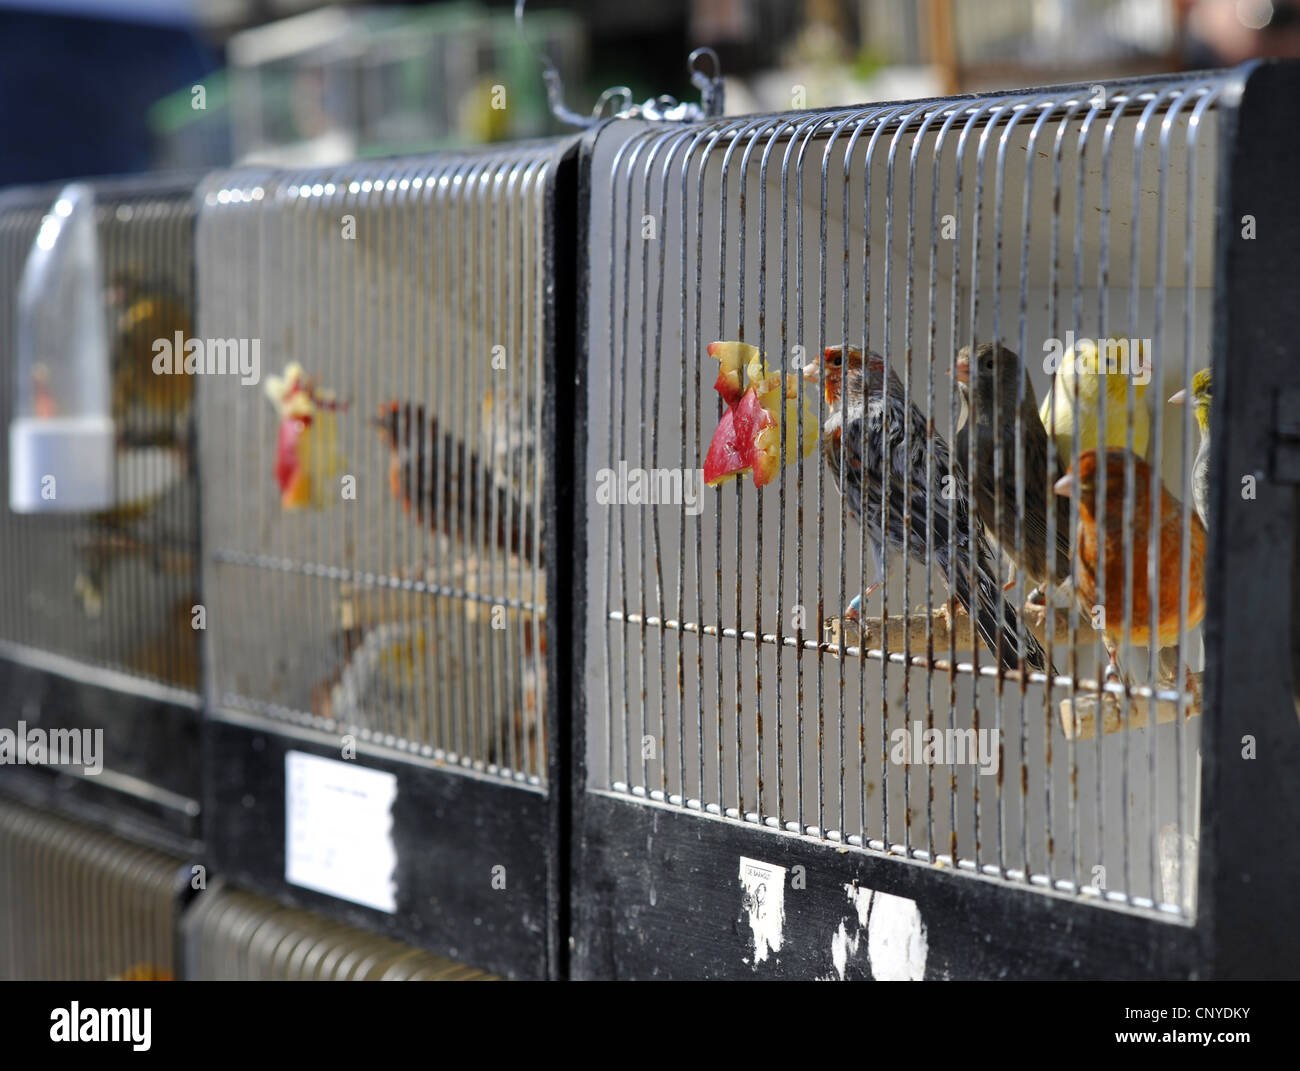 oscine birds in cages for sale at the flower market 'March des Fleurs' turning into a bird market on sundays, - Stock Image